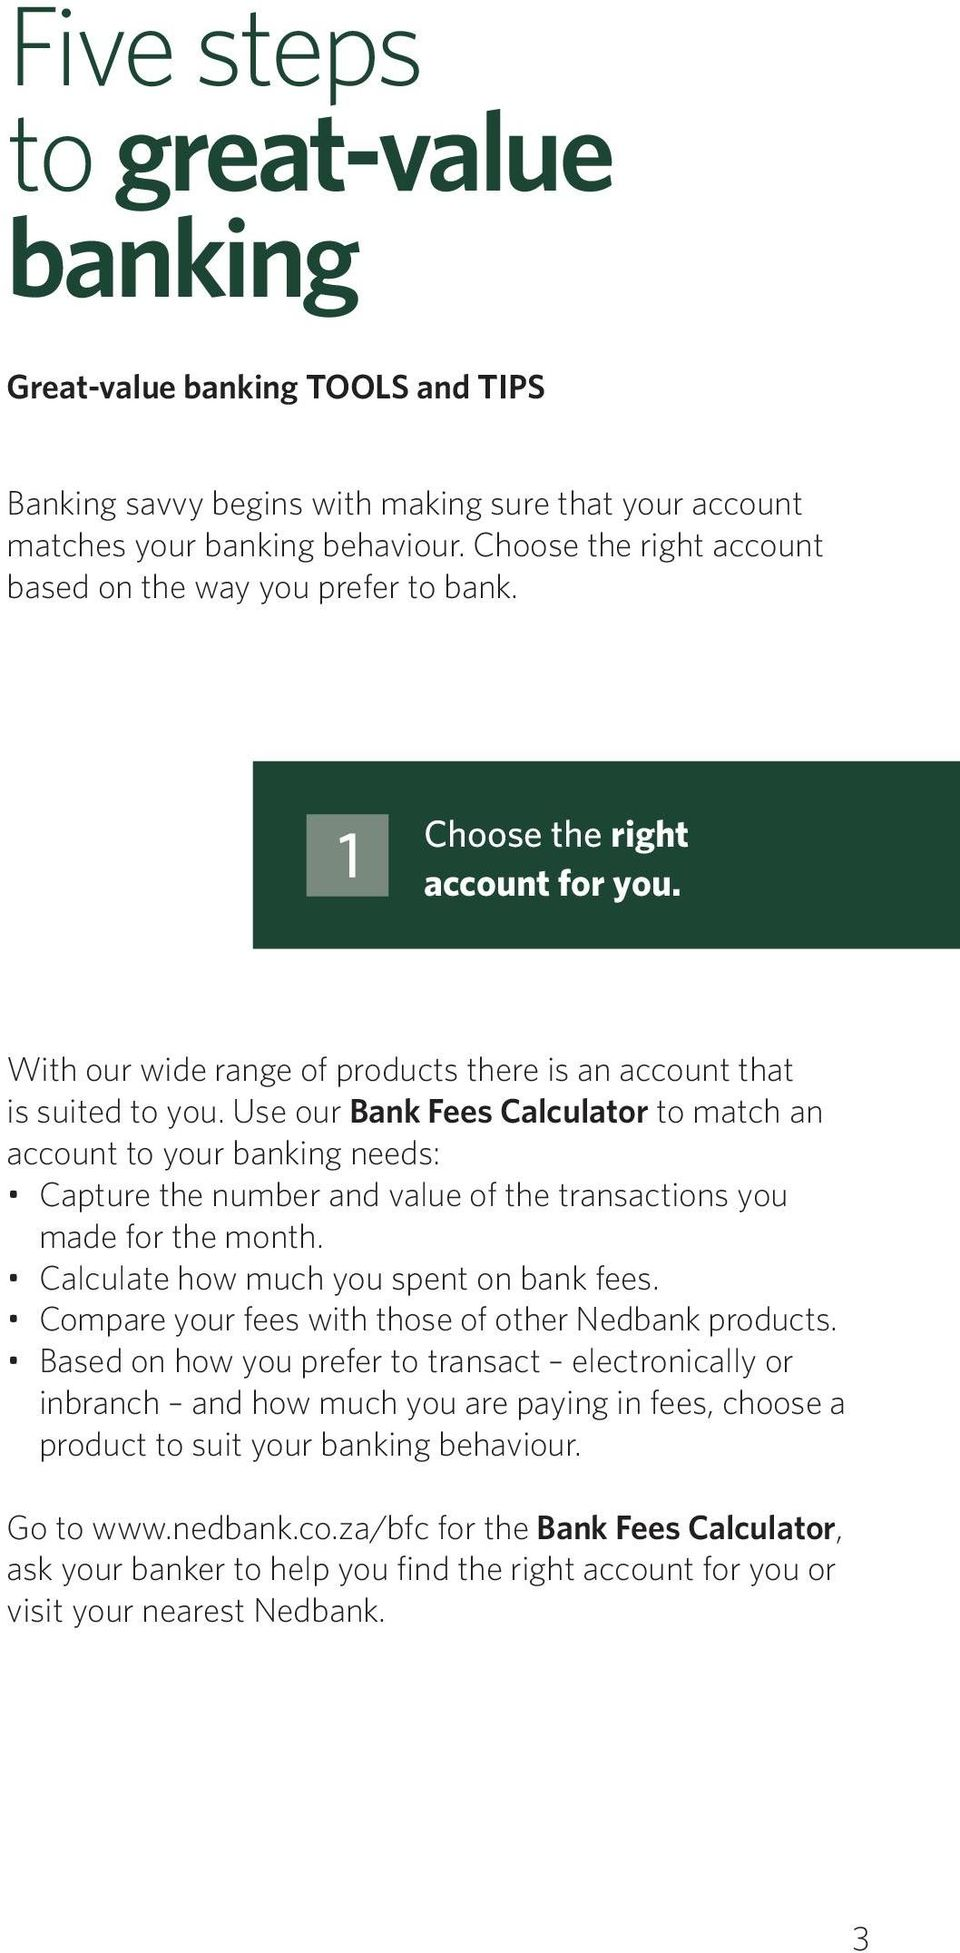 Use our Bank Fees Calculator to match an account to your banking needs: Capture the number and value of the transactions you made for the month. Calculate how much you spent on bank fees.